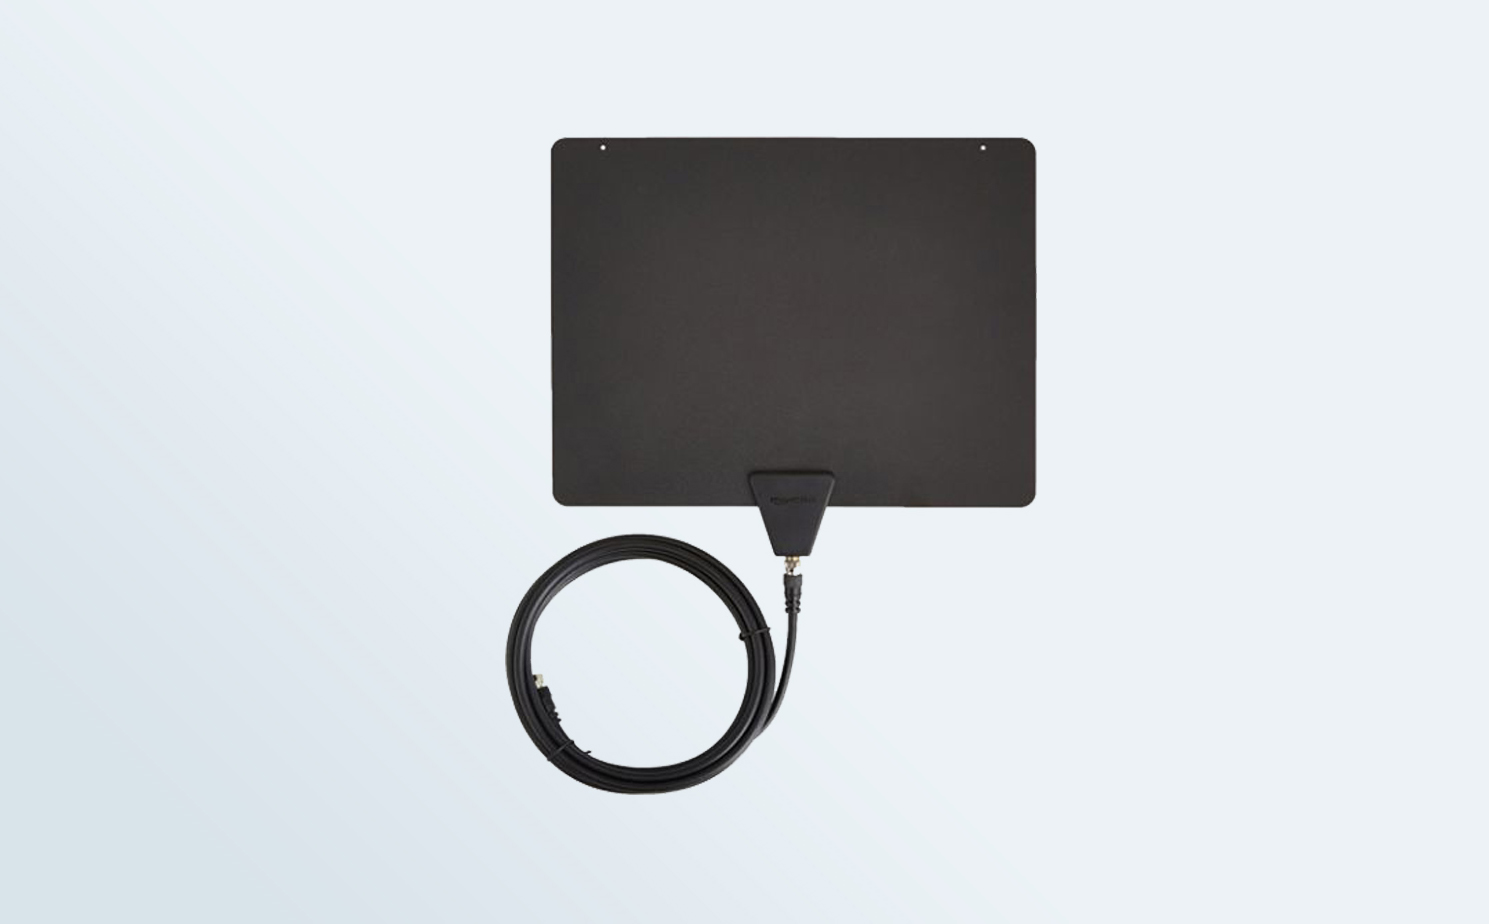 Best HDTV Antennas of 2019 - TV Antenna Reviews and Reception Tests